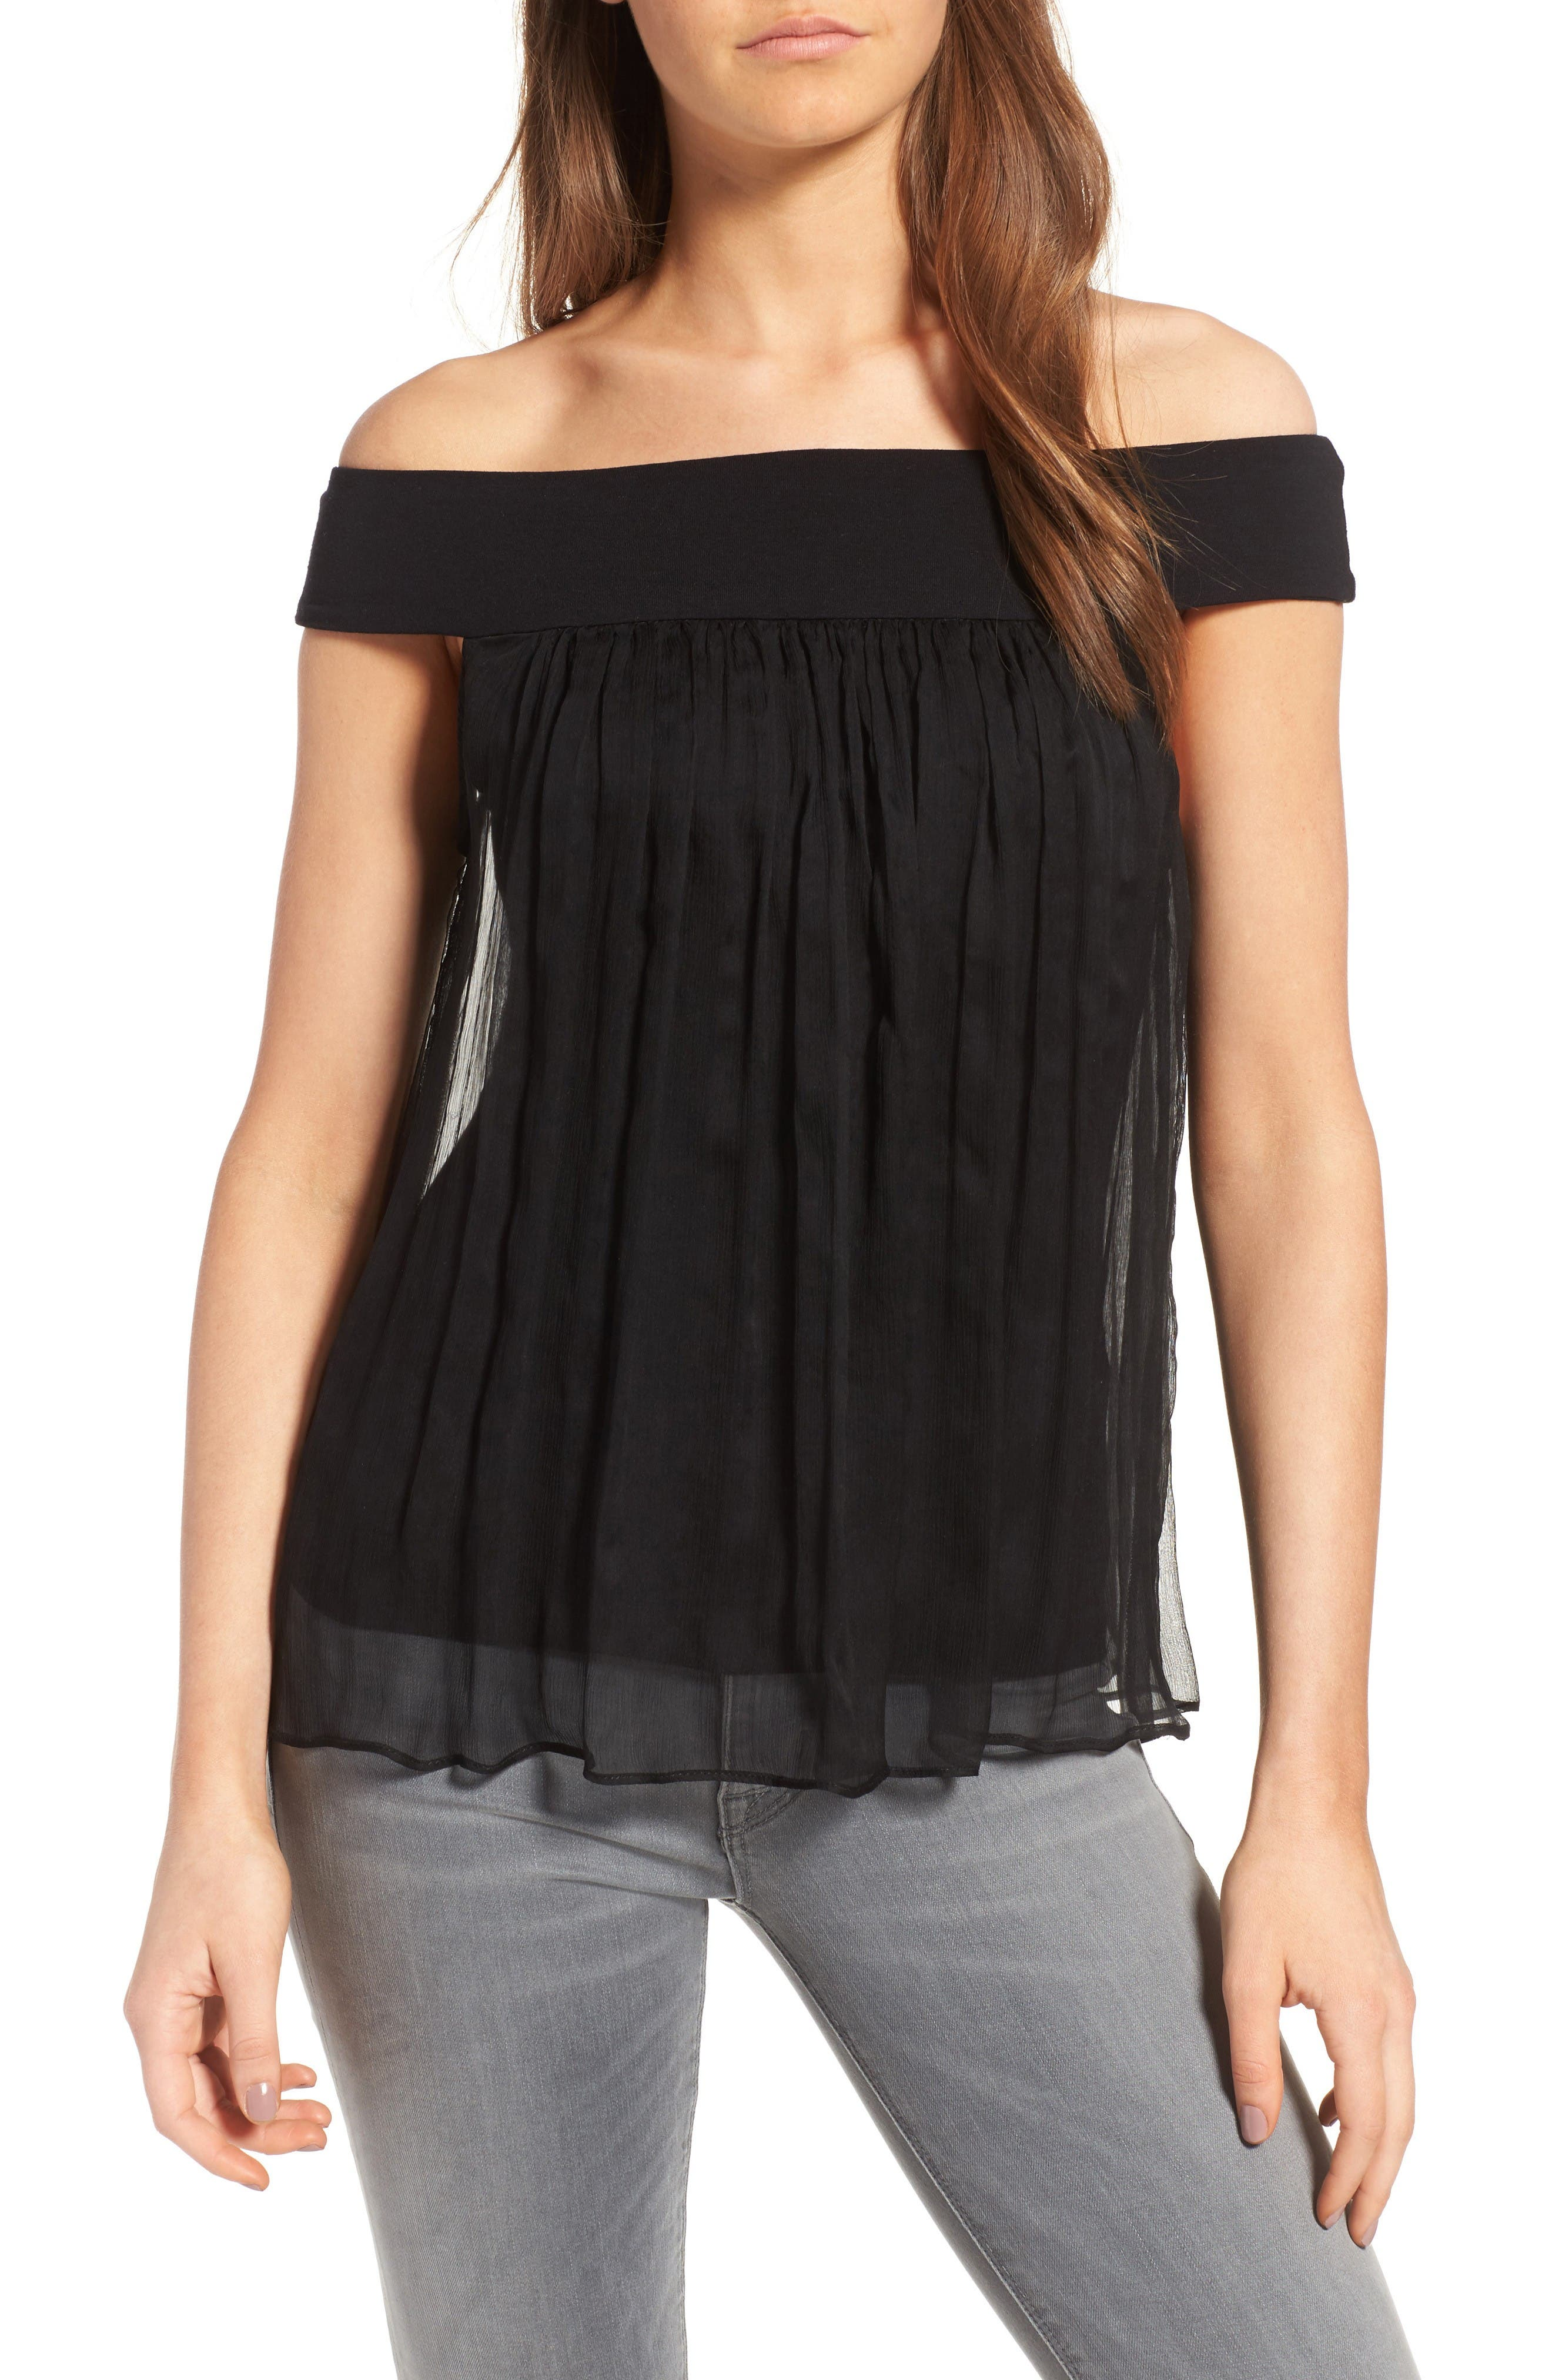 Alternate Image 1 Selected - Bailey 44 Tizhit Silk Off the Shoulder Top